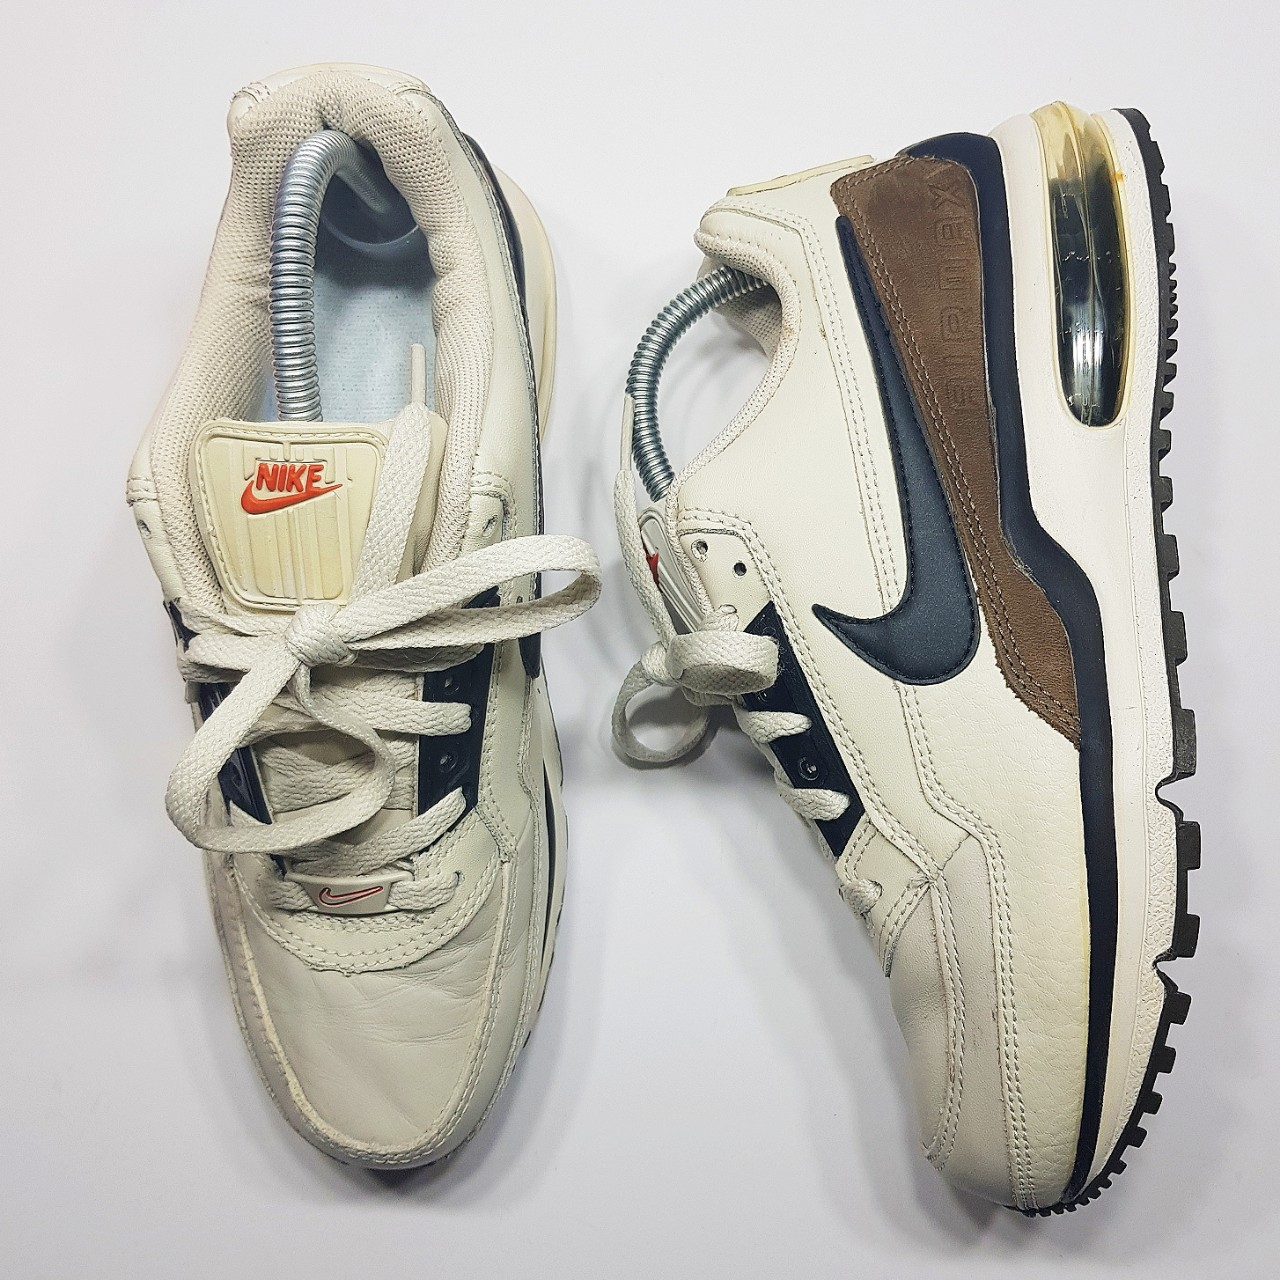 Nike Air Max LTD 5 Homme,nike kids worldtmall